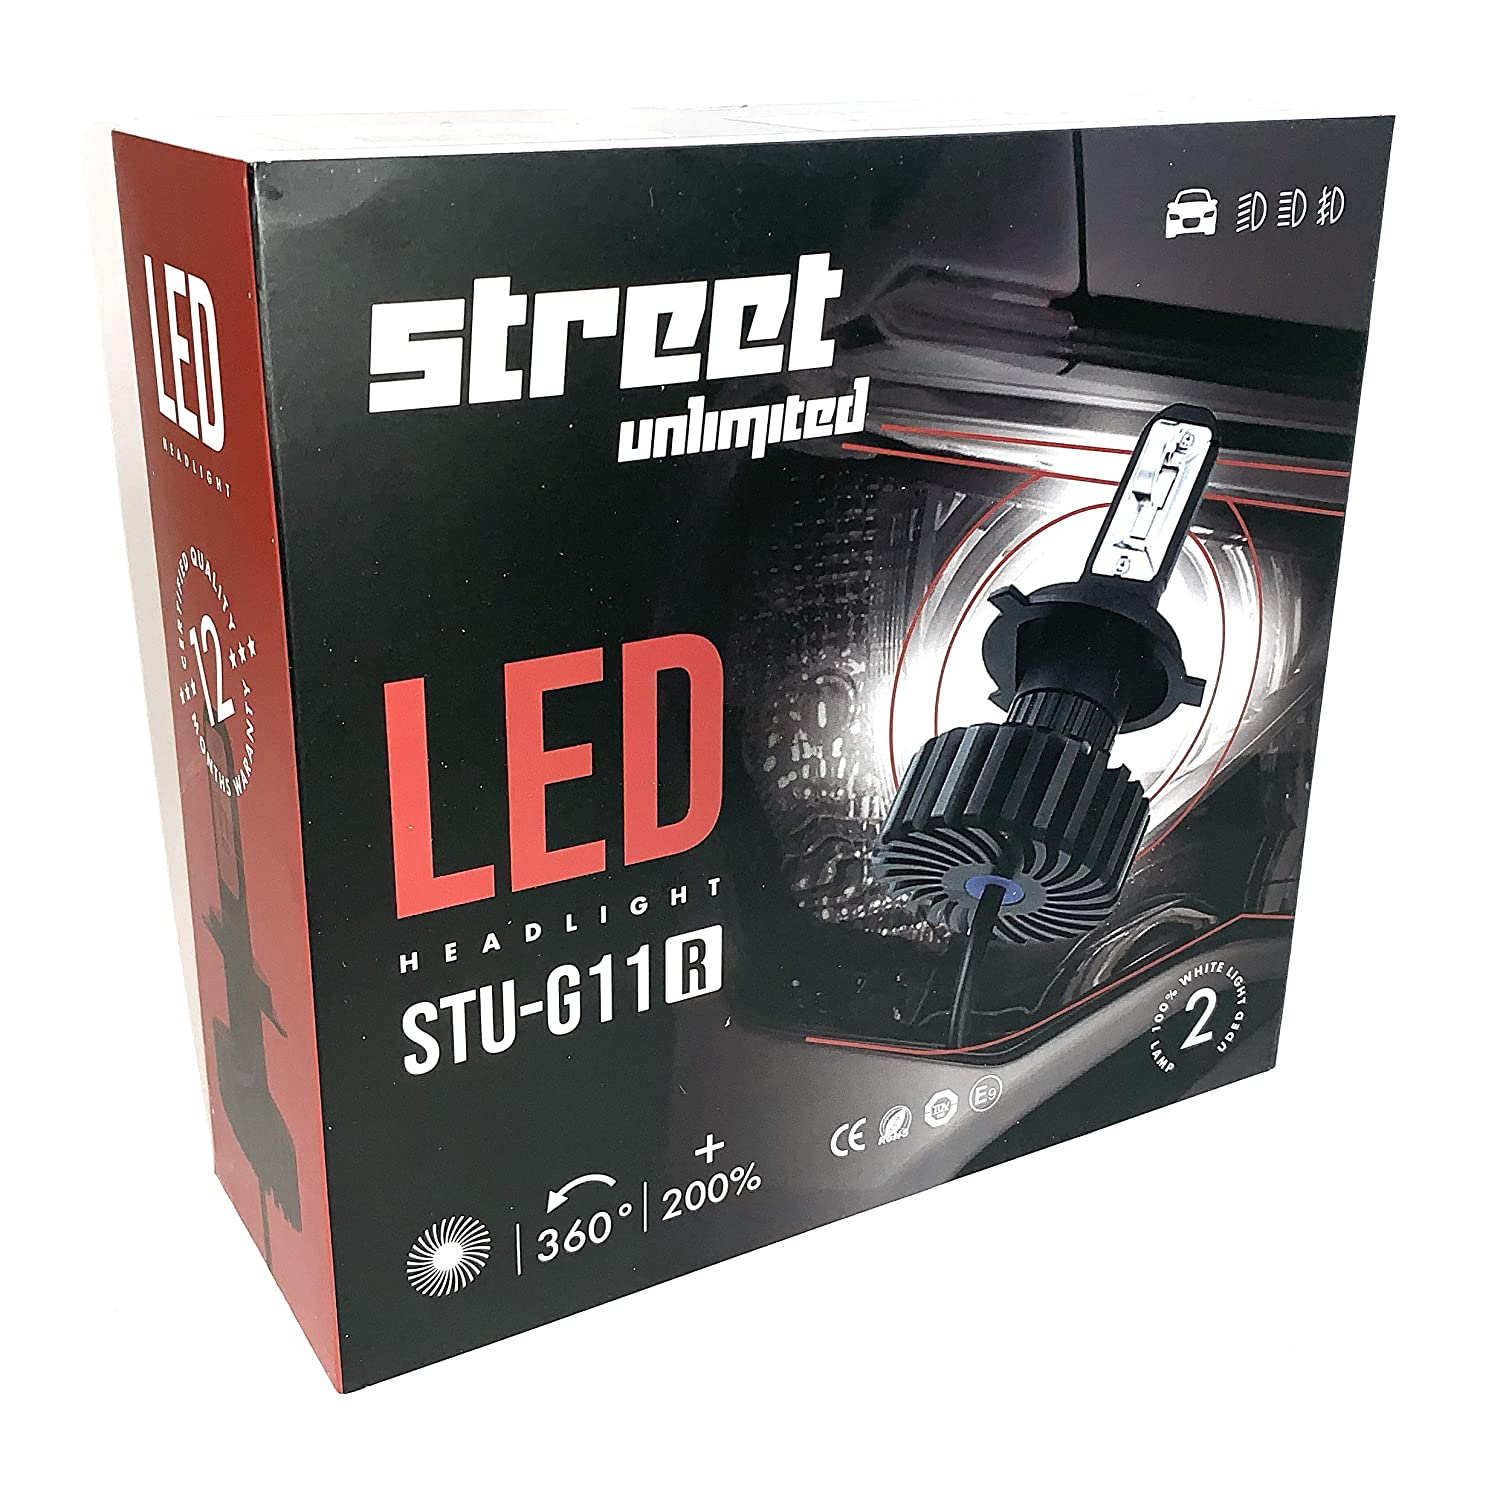 Amazon.com: StreetUnlimited Led Headlights H4 9003 6000k Beam Combo, Fanless, Quiet, Xtreme Super White Color Chips, Plug and Play, Works with Any Car, ...